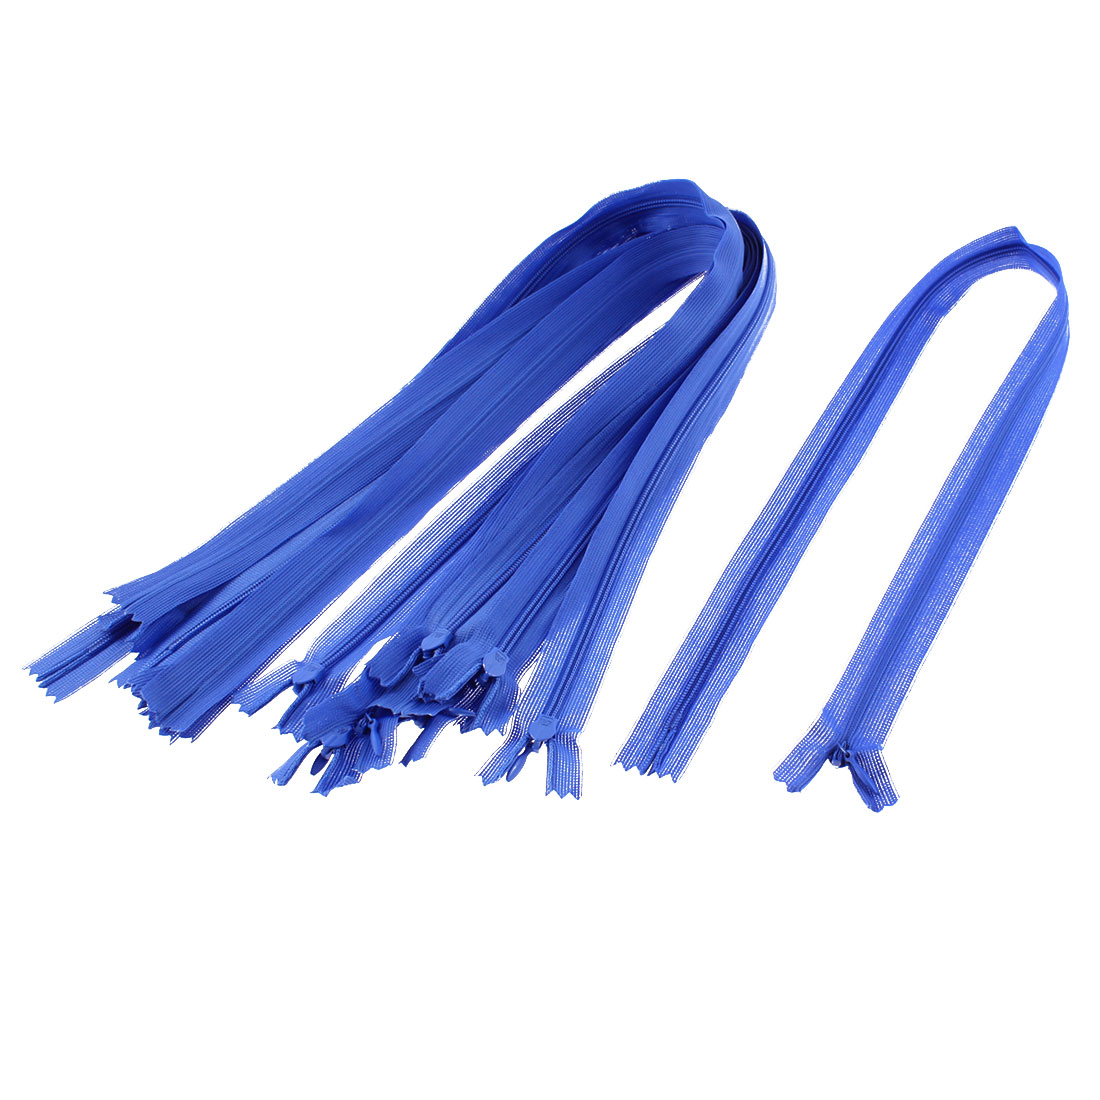 Dress Pants Closed End Nylon Zippers Tailor Sewing Craft Tool Blue 55cm 10 Pcs